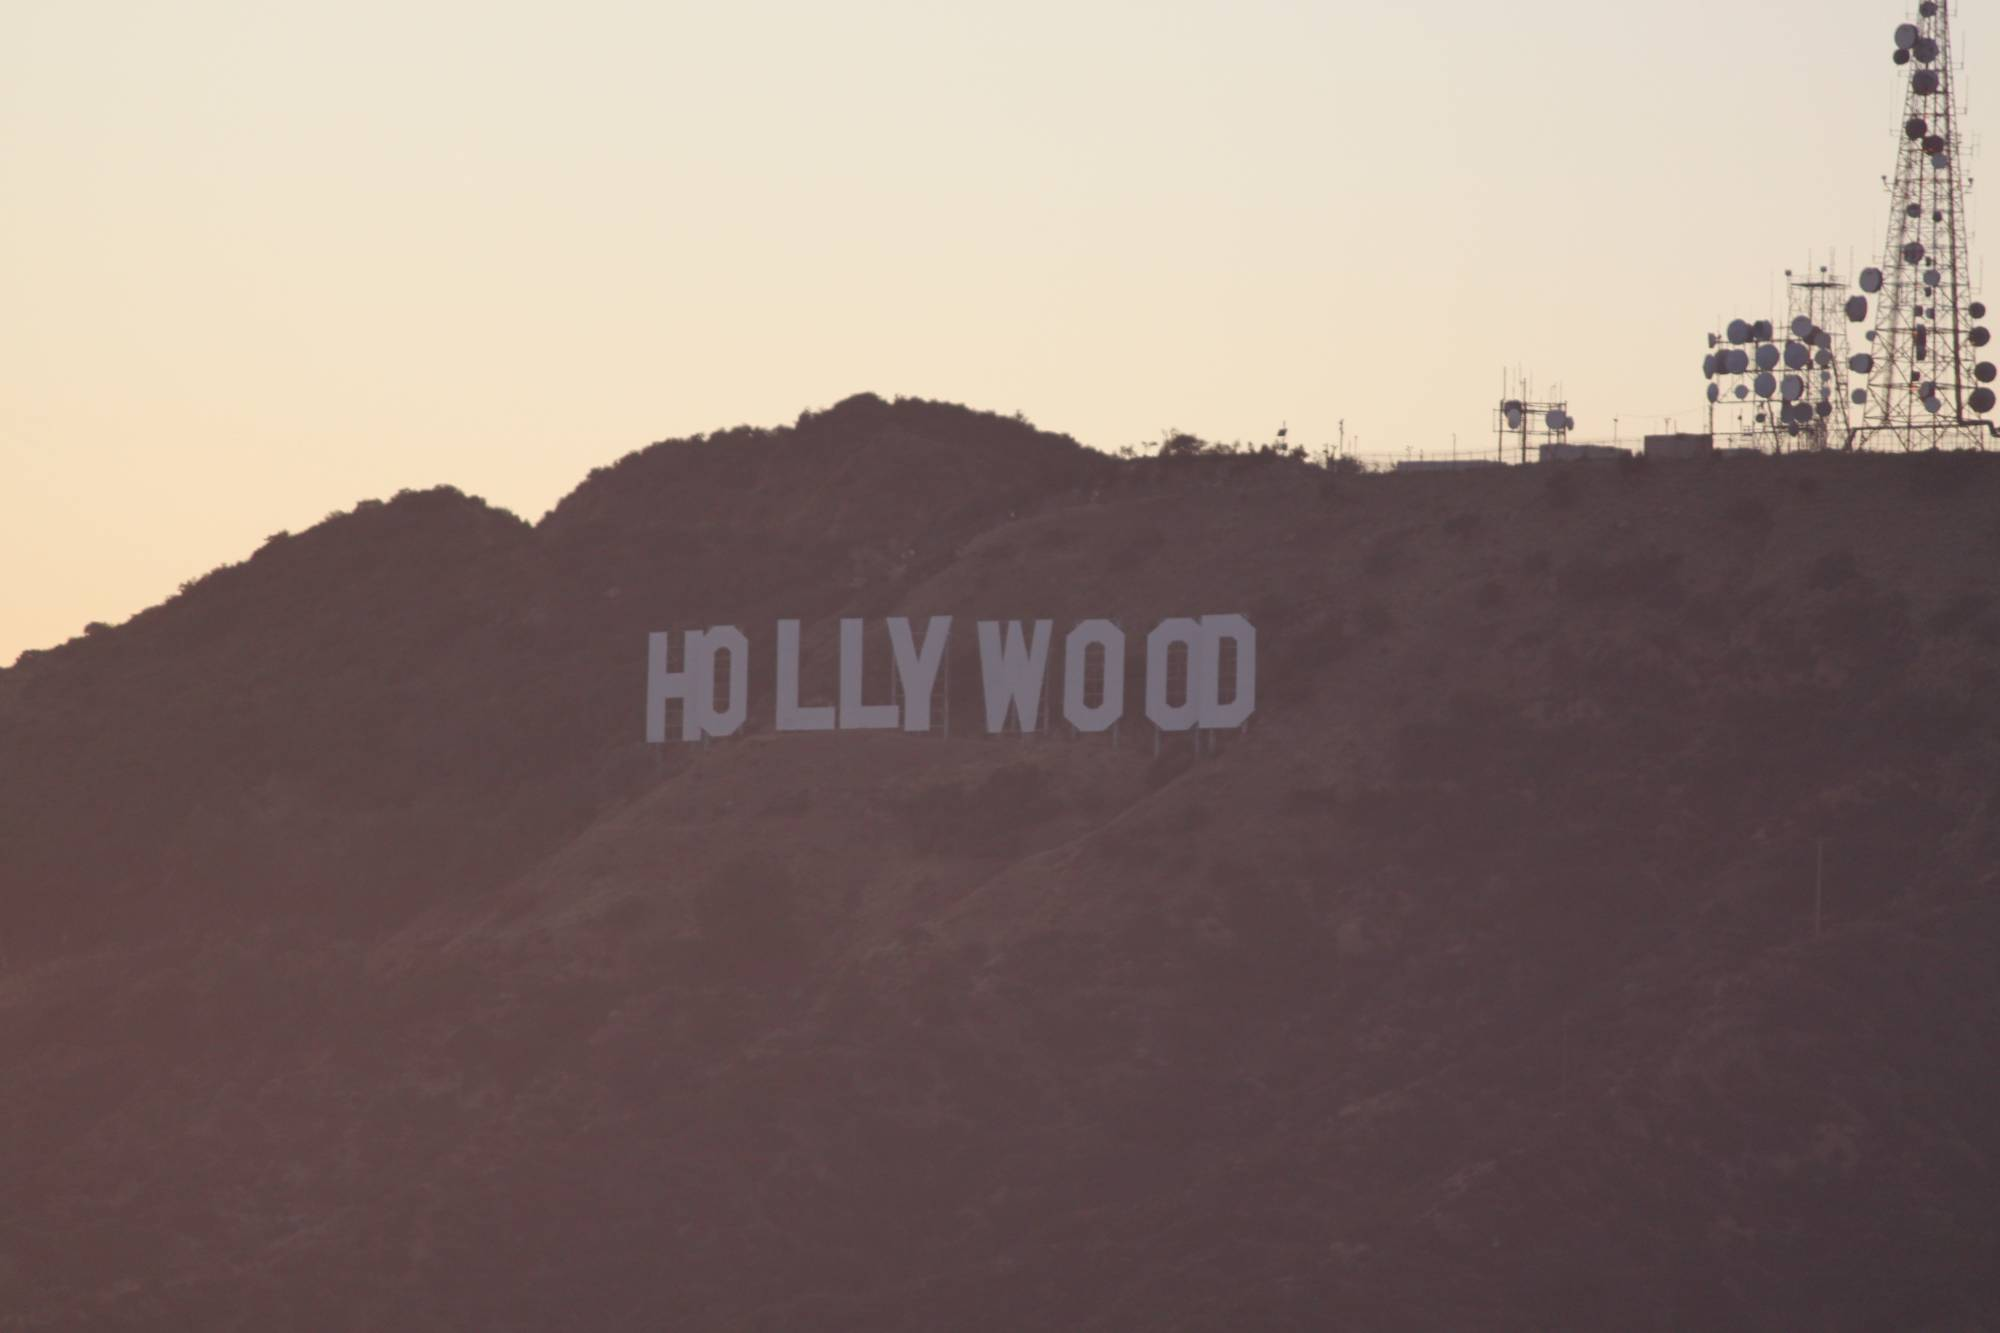 Hollywood sign from Griffith Observatory - Los Angeles